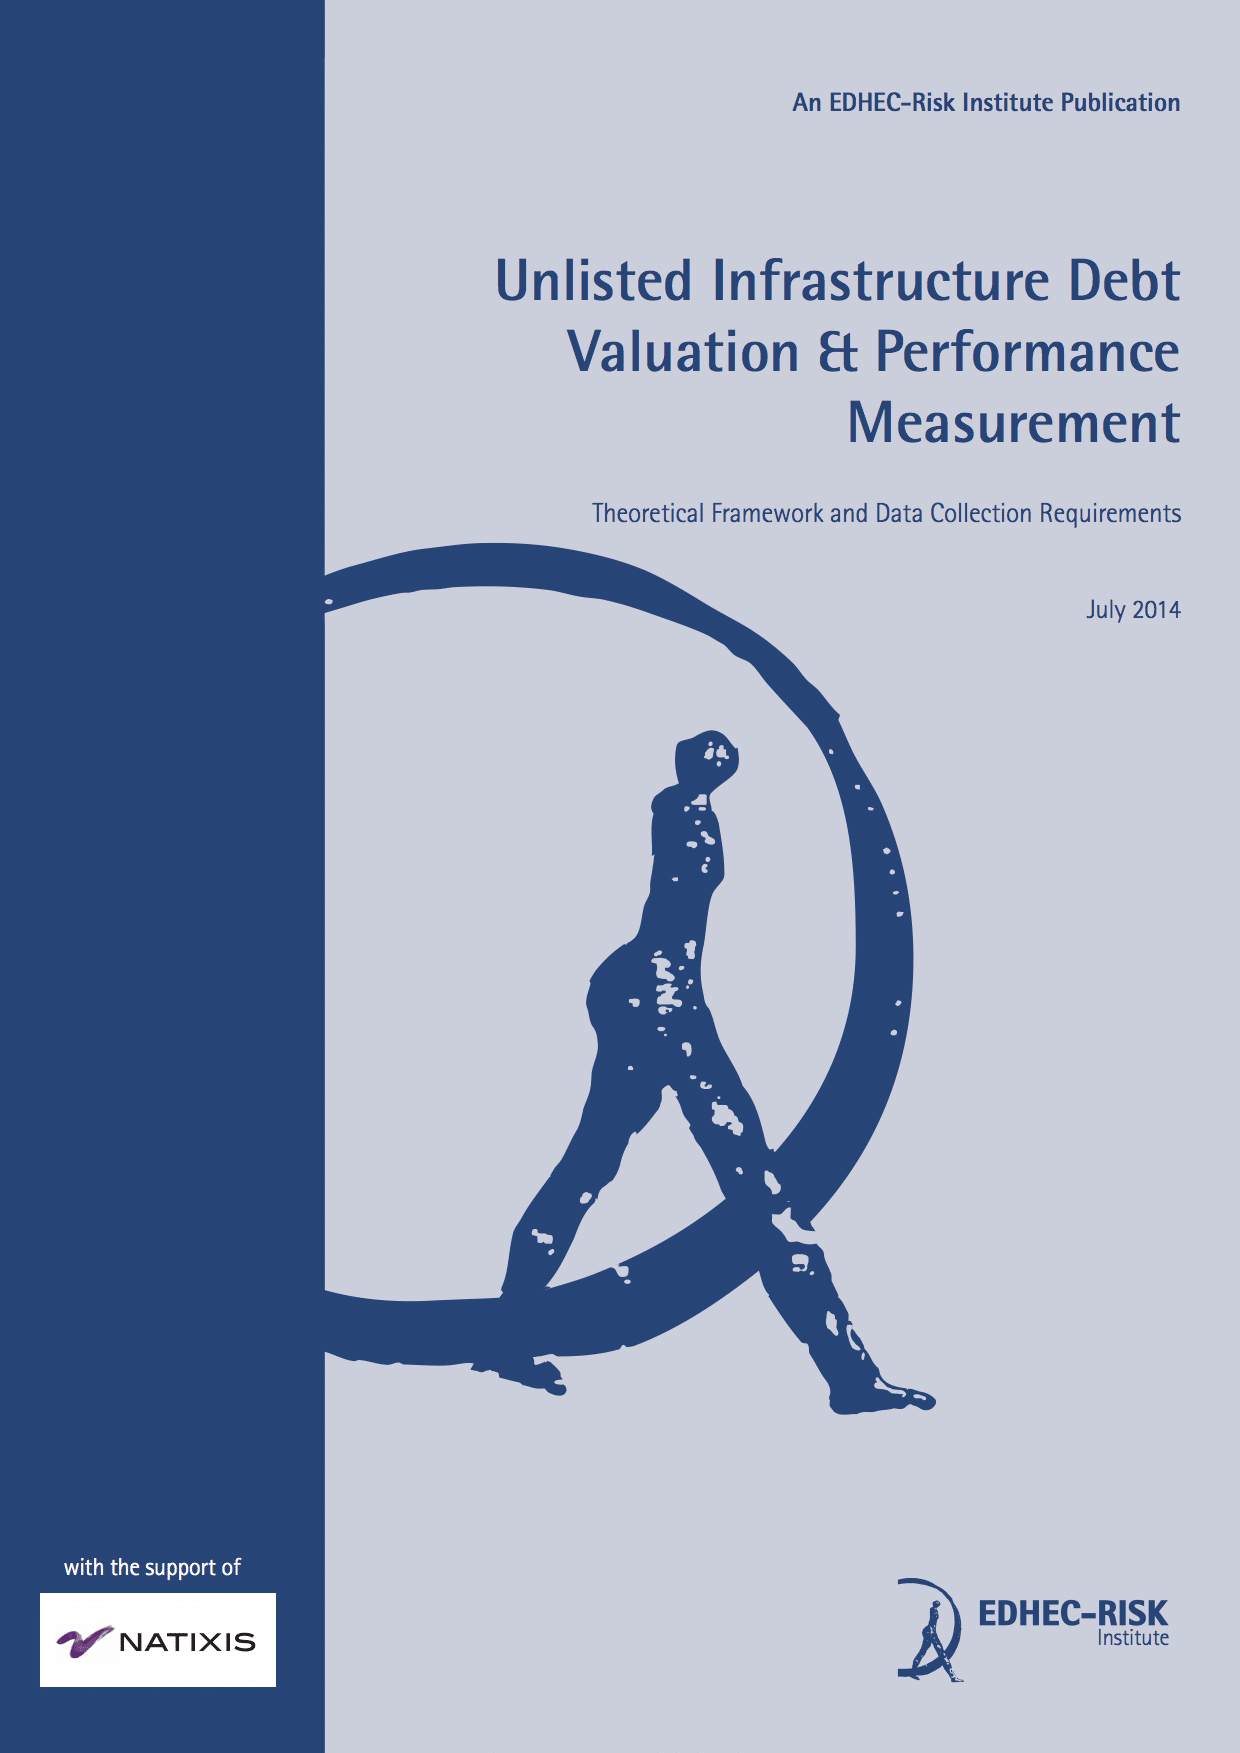 Unlisted Infrastructure Debt Valuation & Performance: Theoretical Framework and Data Collection Requirements